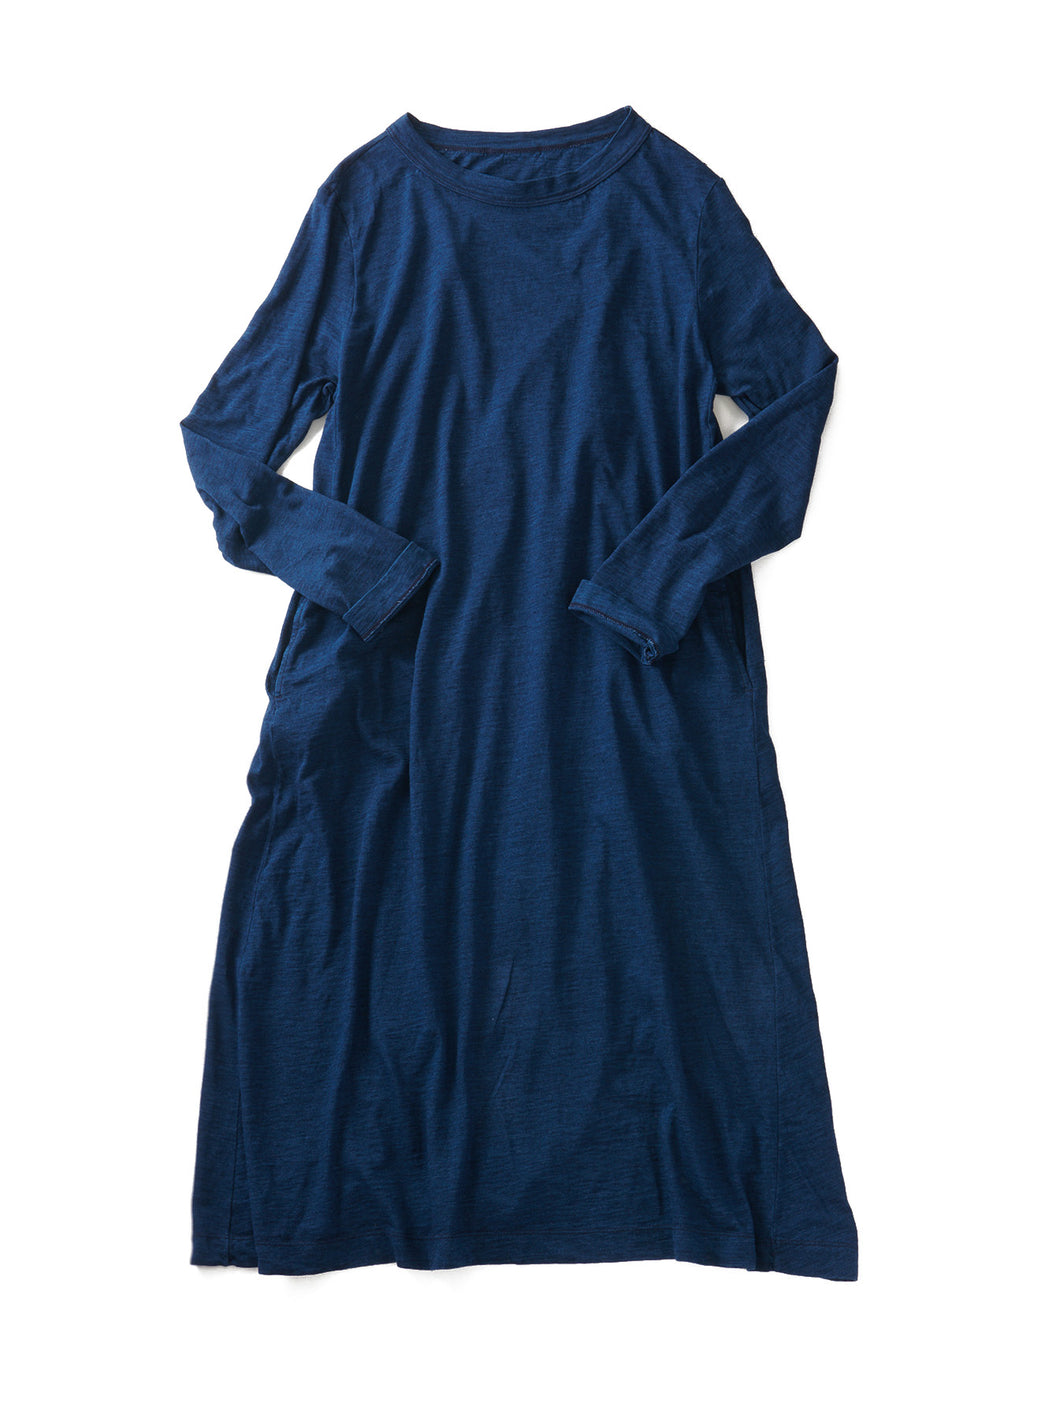 Indigo Zimba Tenjiku Dress in Indigo